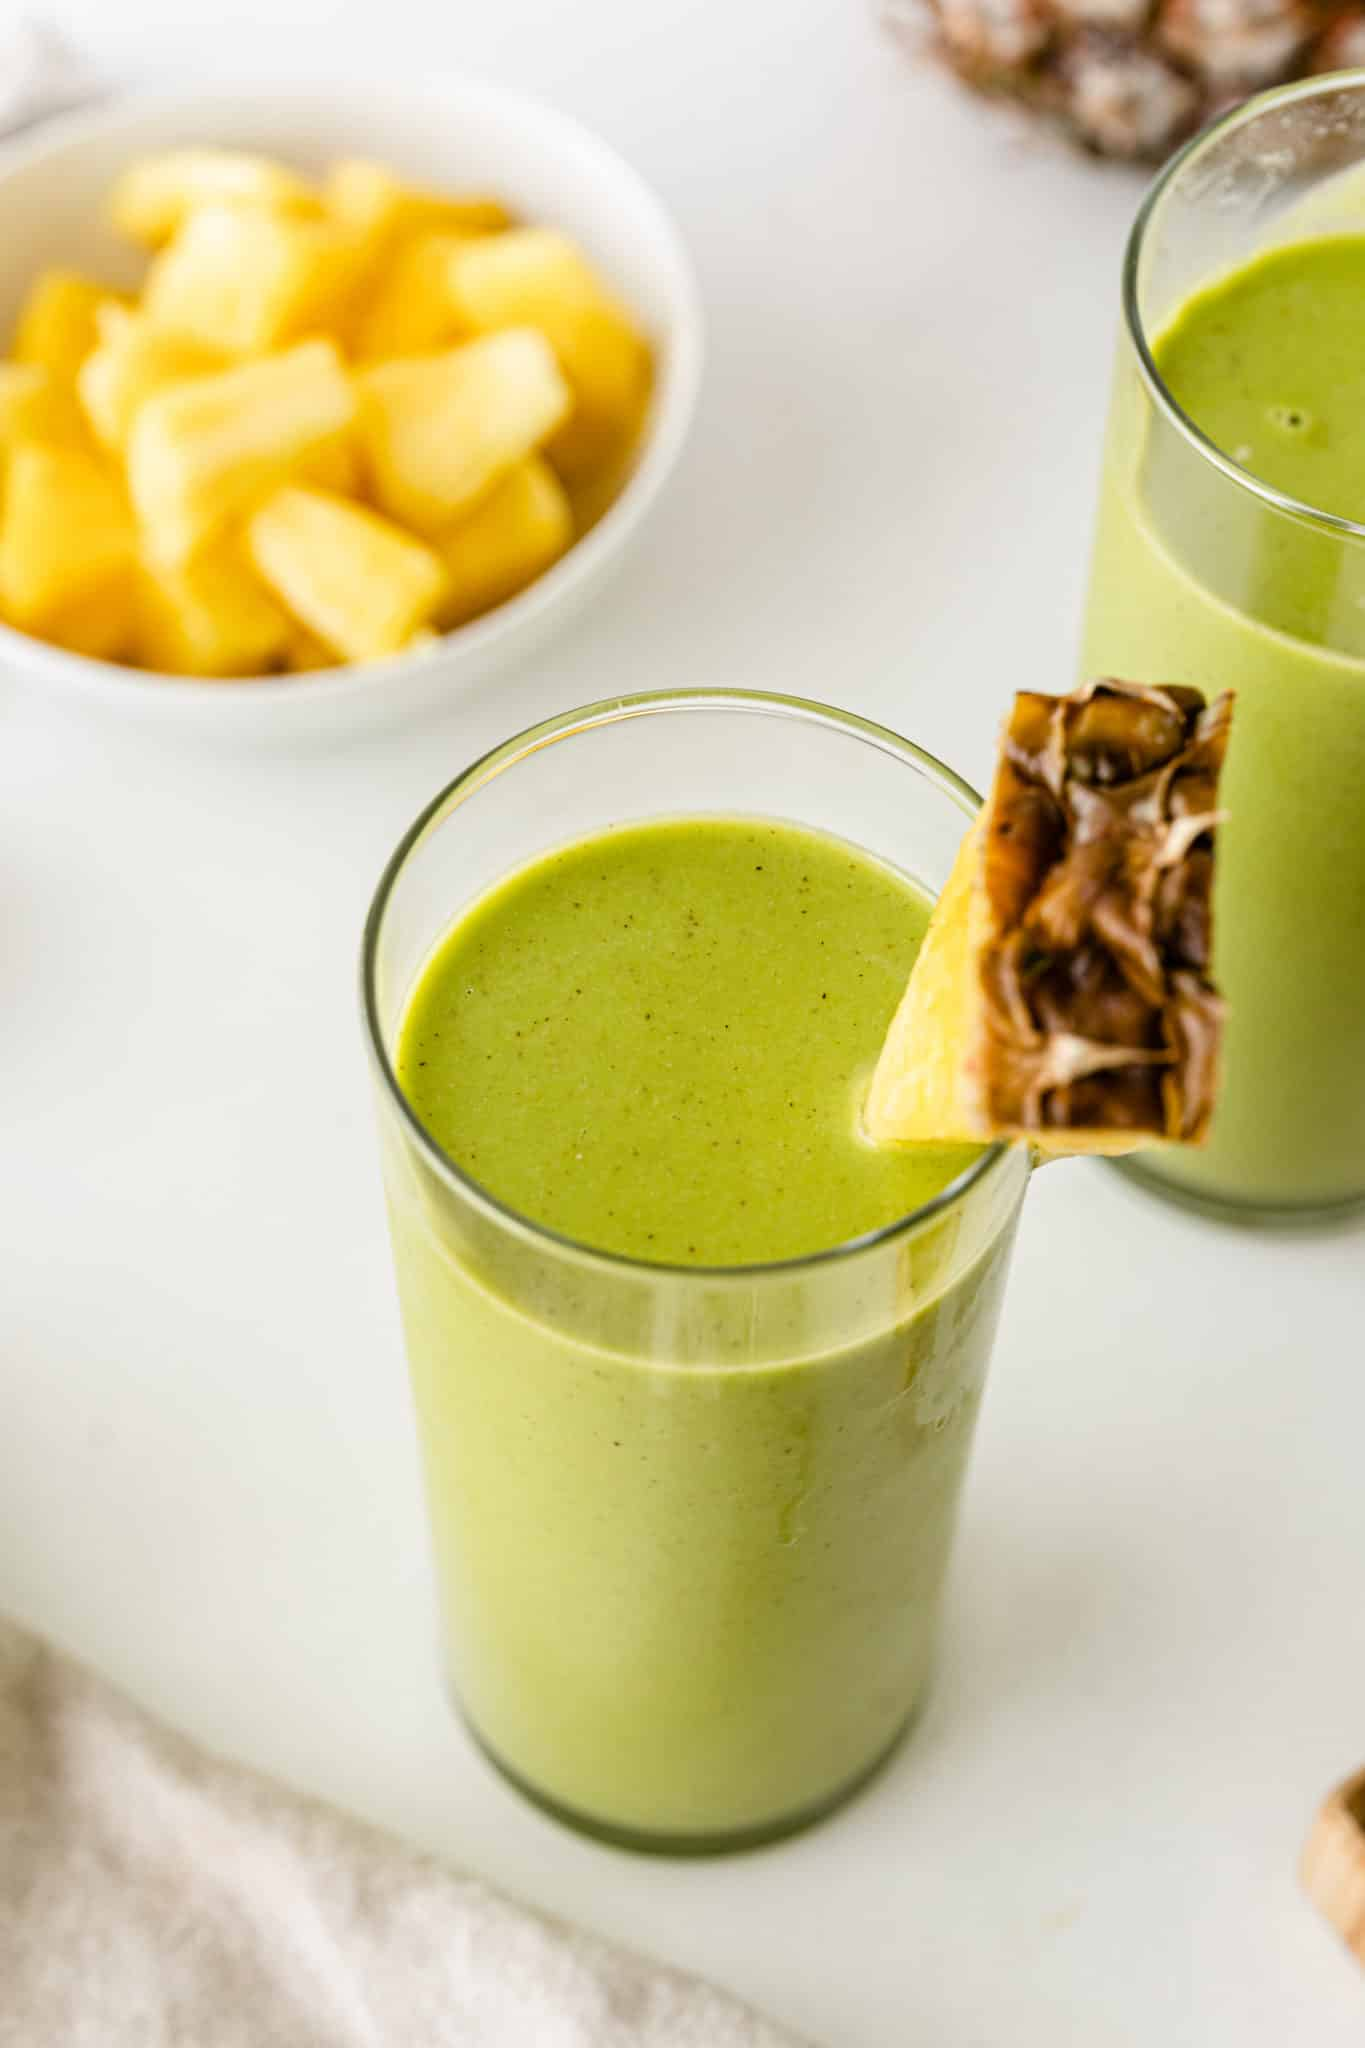 green smoothie served in a glass with a wedge of fresh pineapple